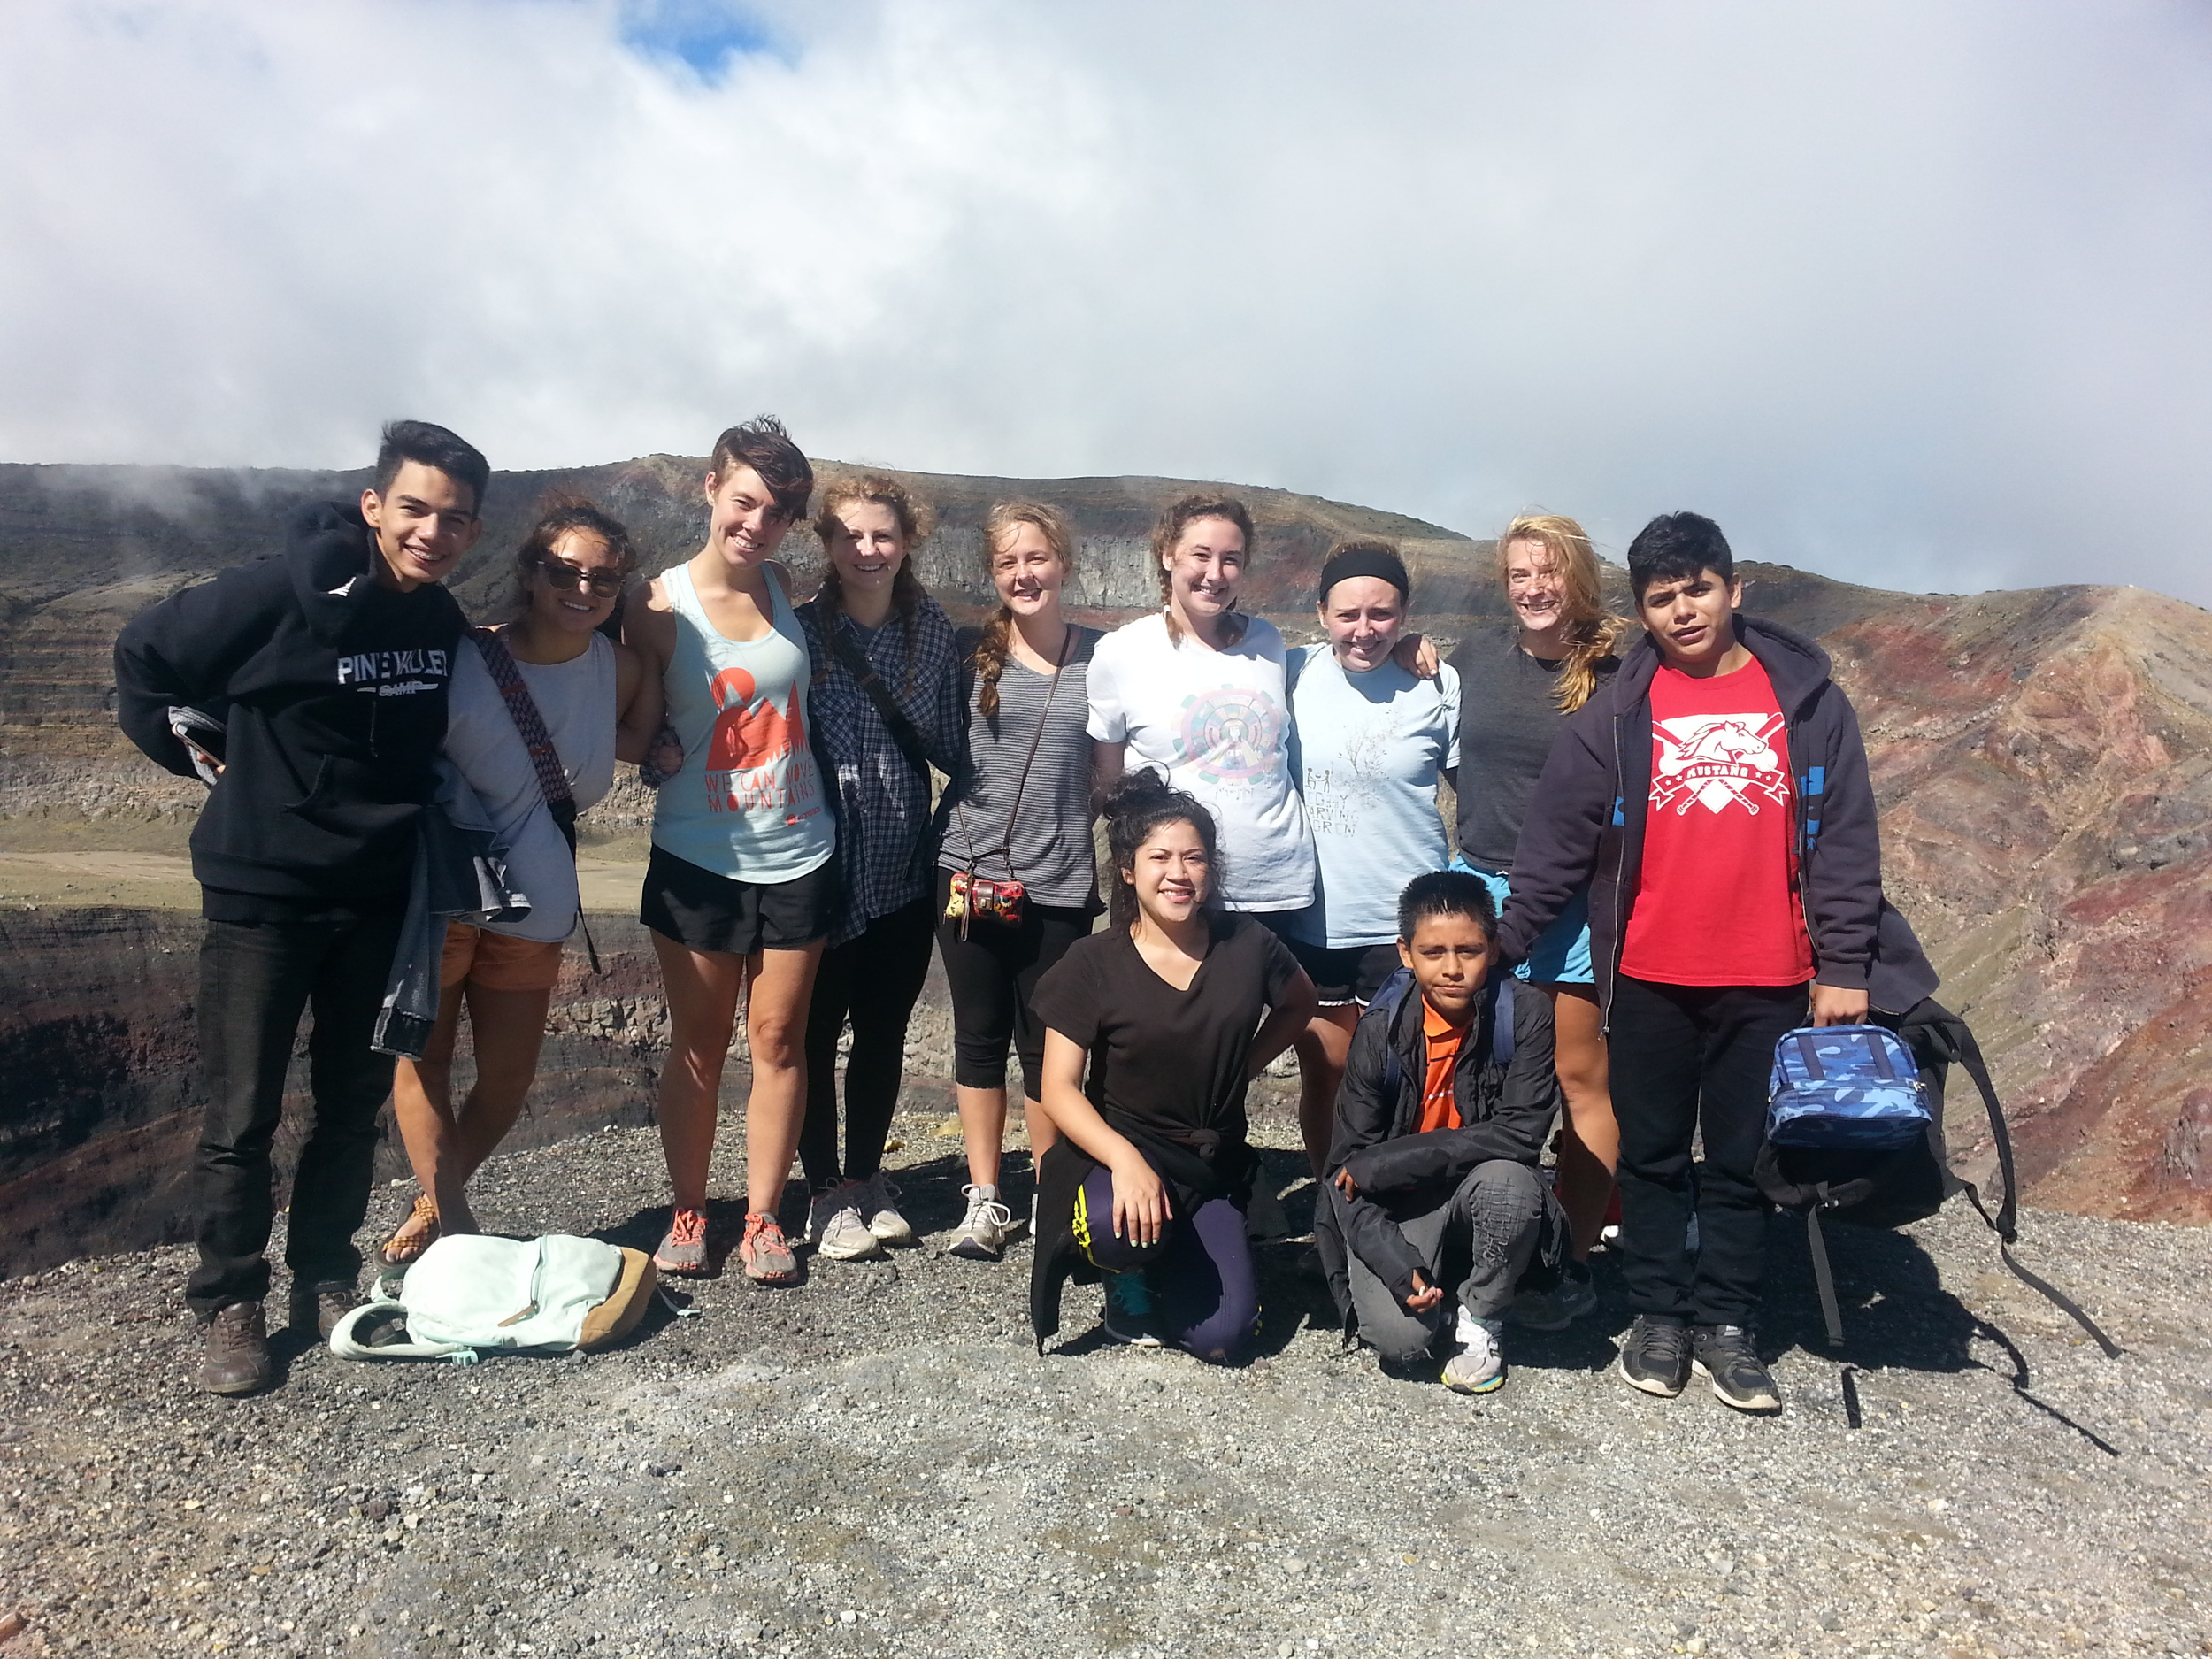 At the summit of Santa Ana Volcano with Allie, Mia, Emma, Megan, Molly,  & Annie From the World Ra  ce